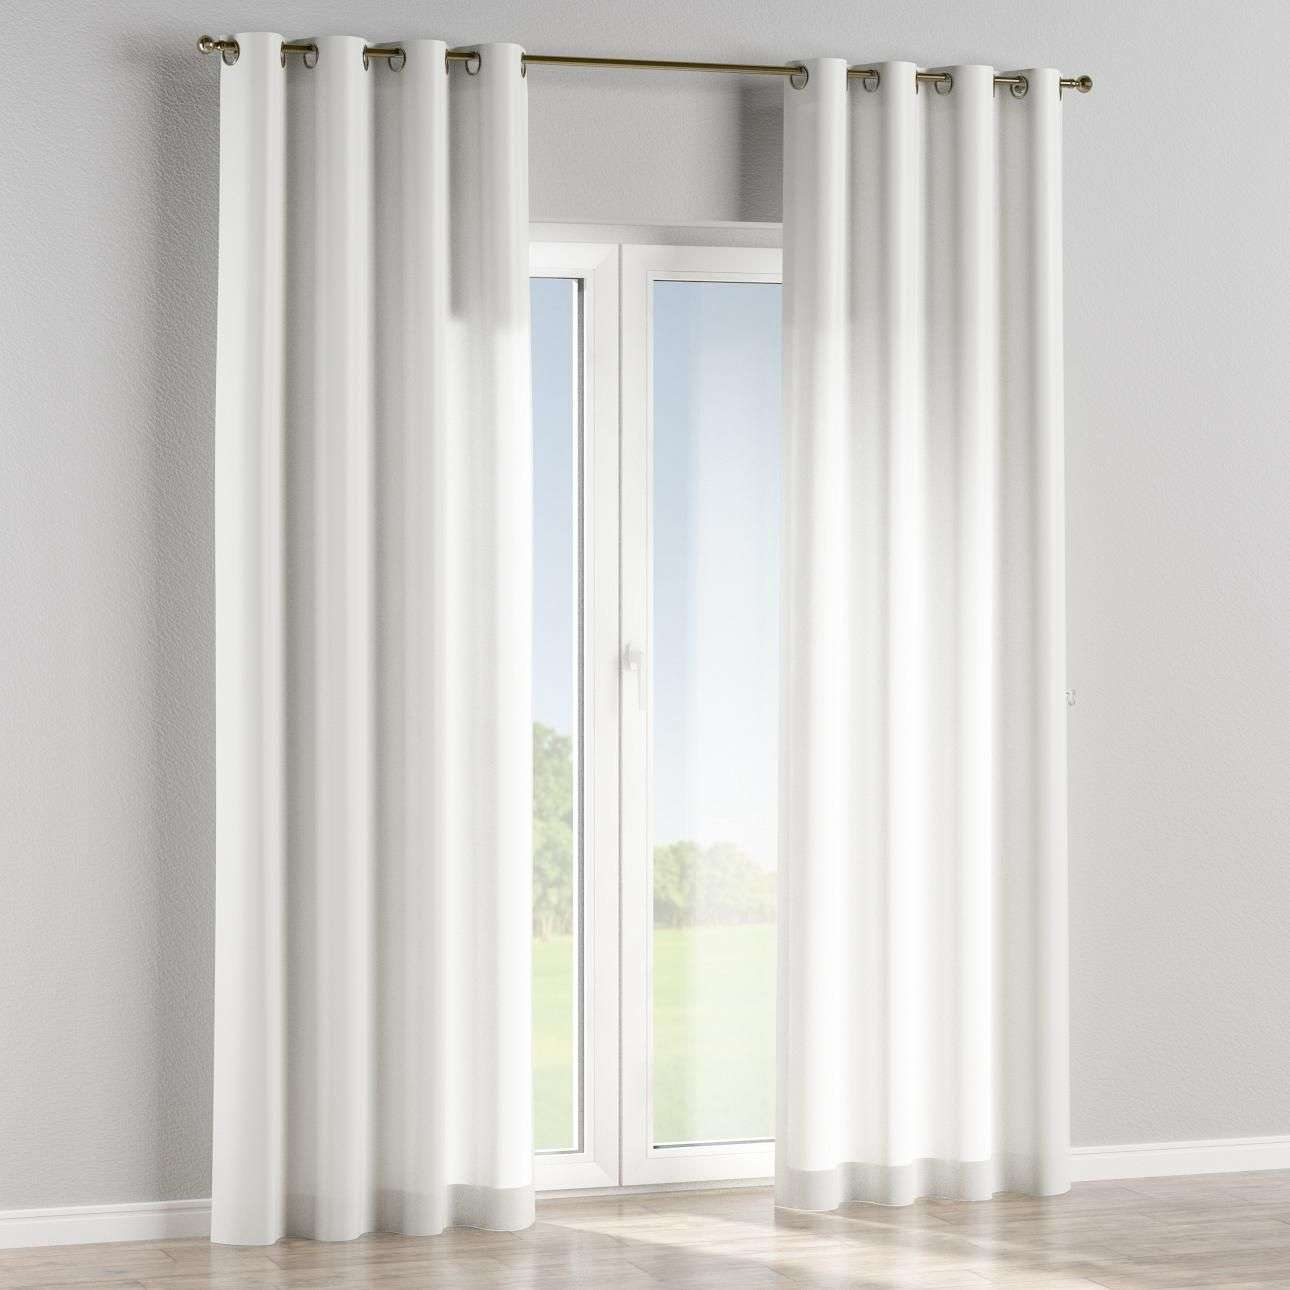 Eyelet curtains in collection Cardiff, fabric: 136-24